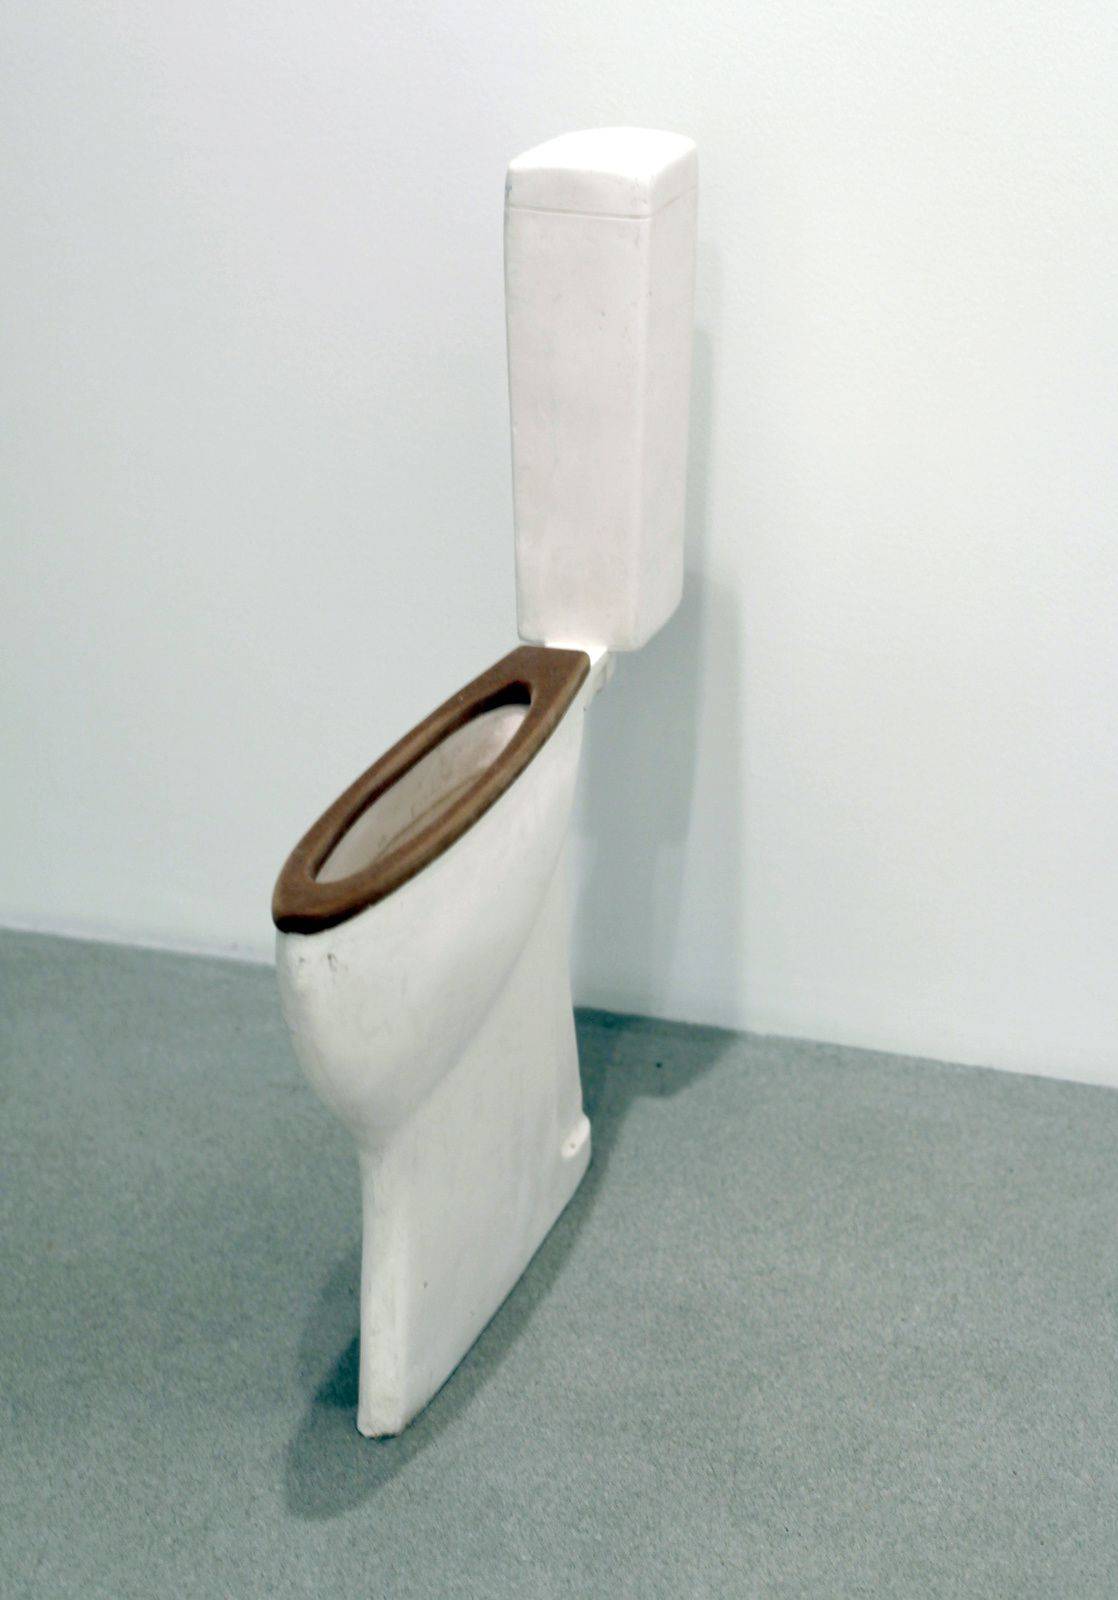 """Toilet"", 2014 de Erwin Wurm - Courtesy Galerie Thaddaeus Ropac © Photo Éric Simon"